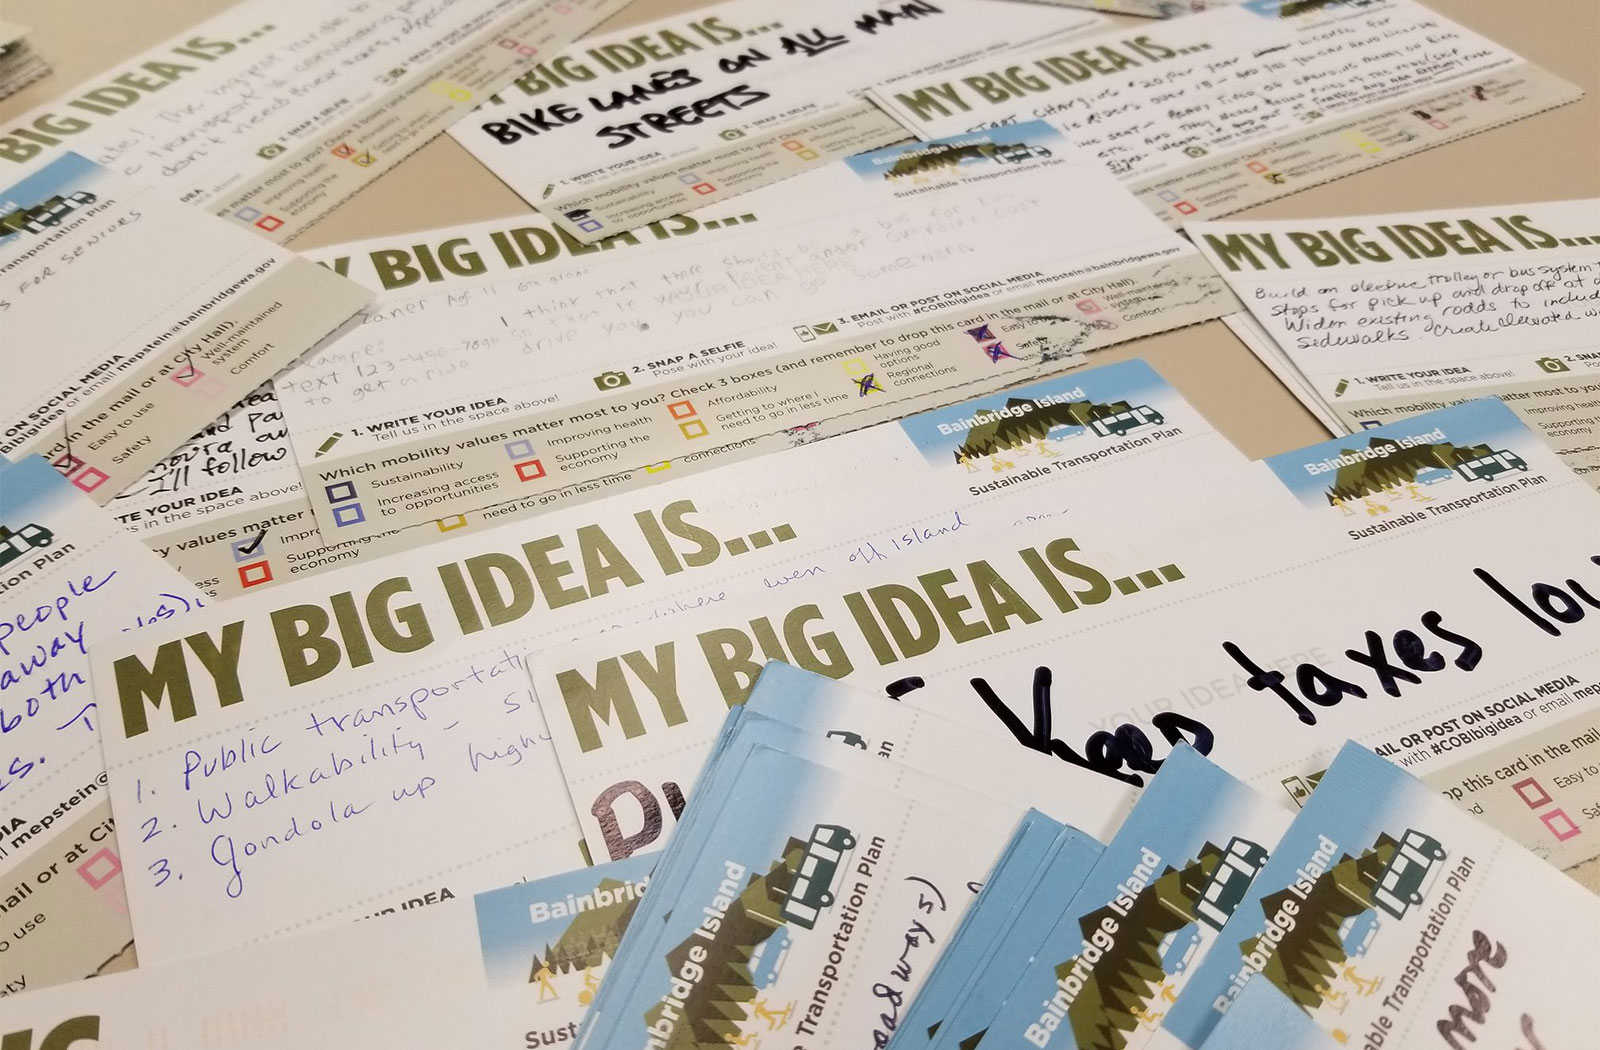 a pile of postcards with various Big Ideas written out by community members